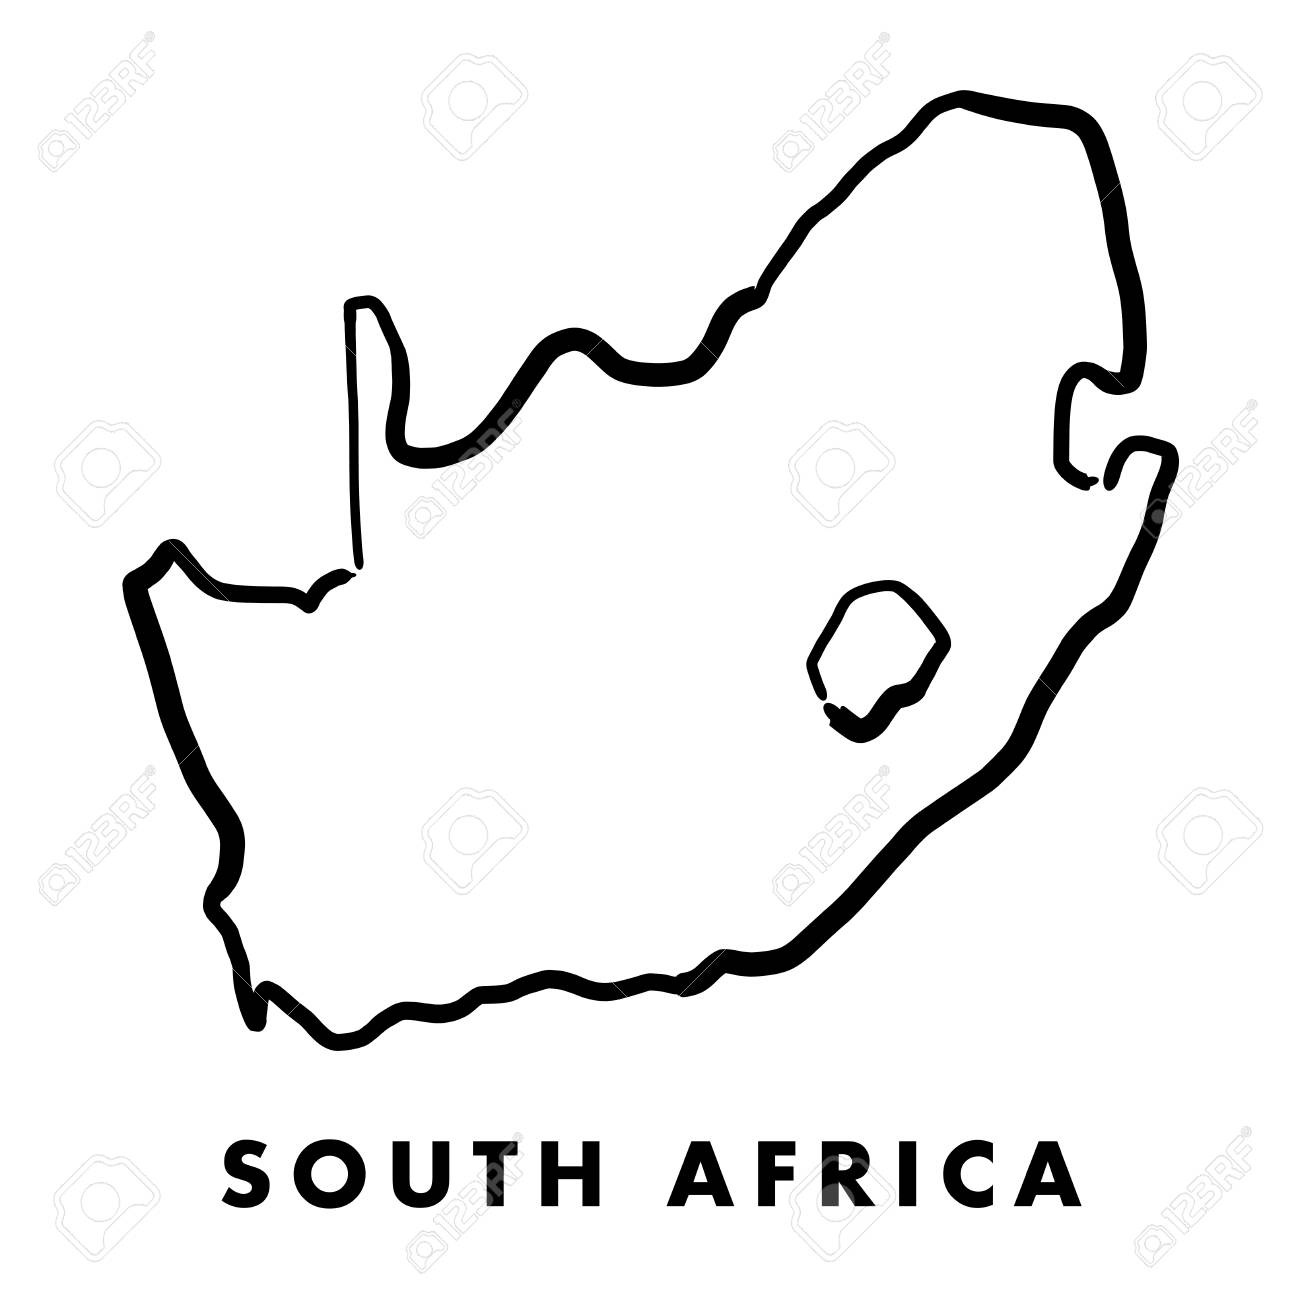 South Africa Simple Map Outline Smooth Simplified Country Shape Royalty Free Cliparts Vectors And Stock Illustration Image 89179521